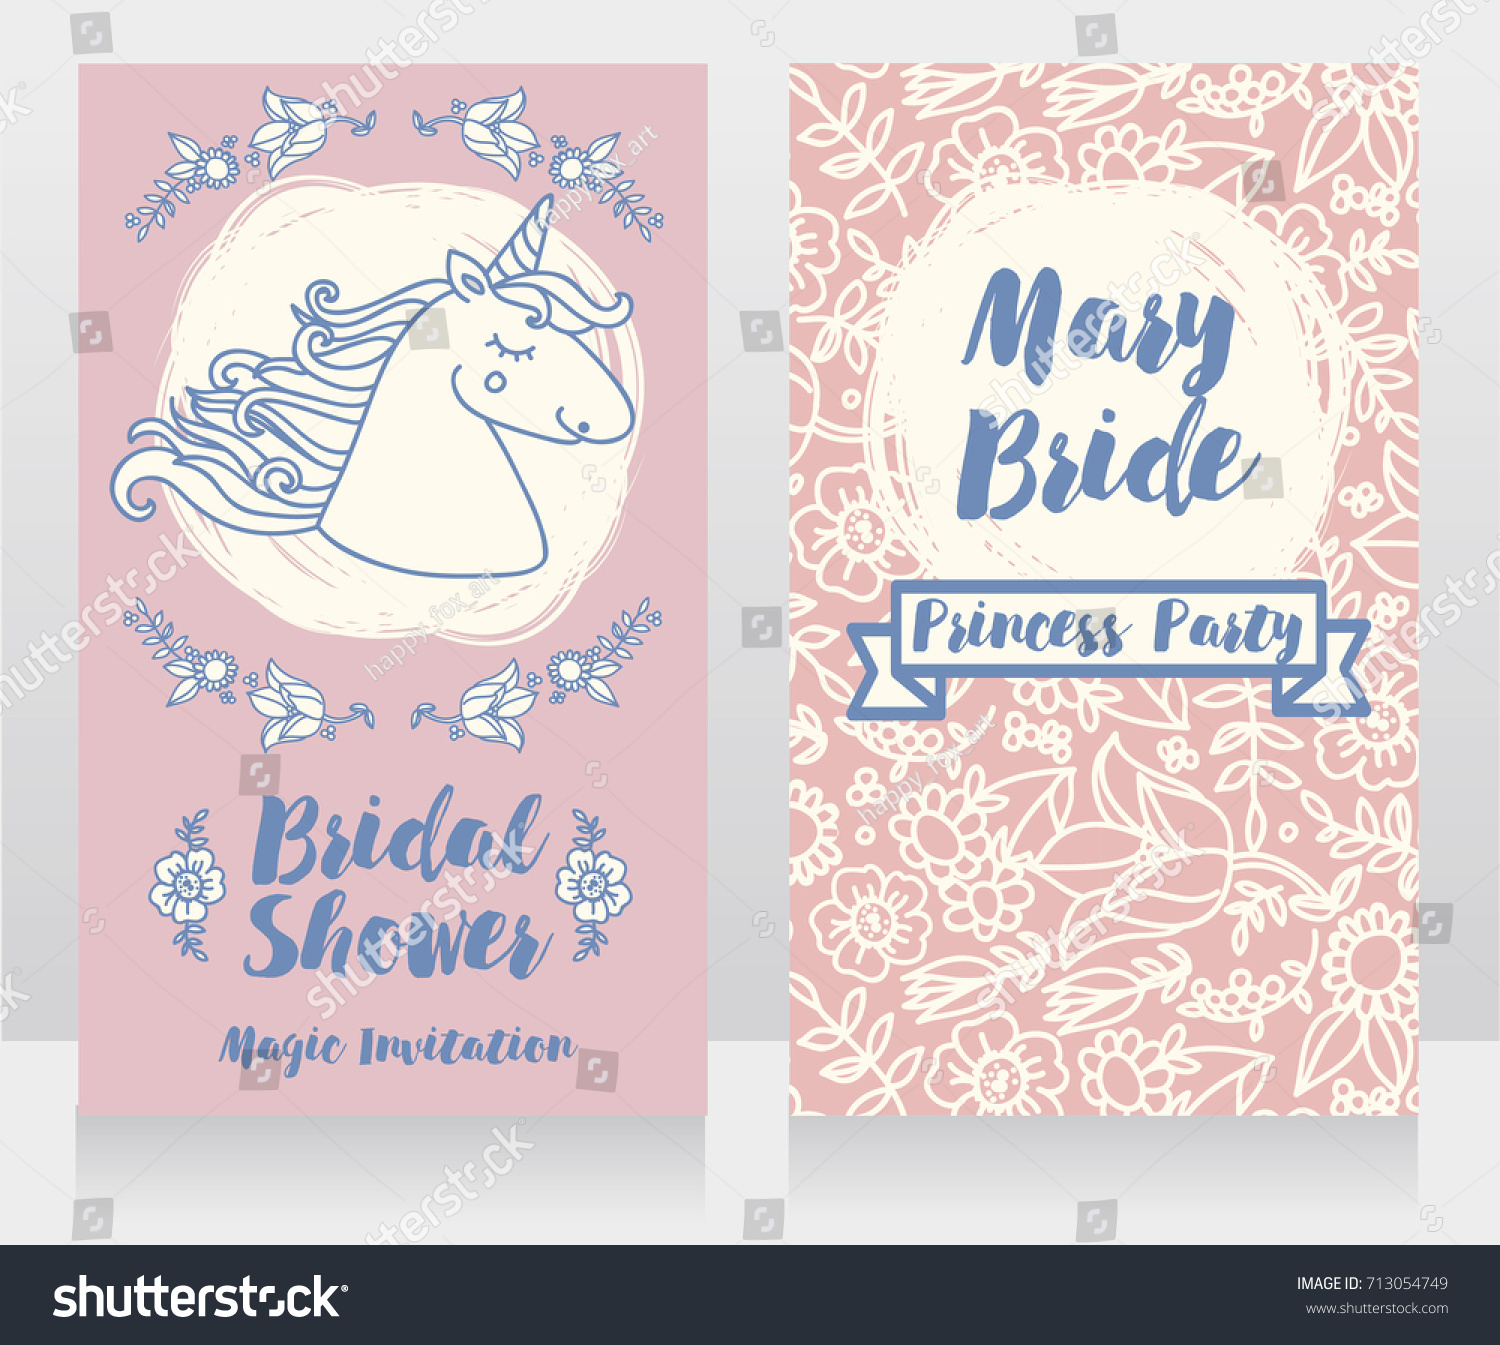 a2175ac4c5a1 Banners Bridal Shower Cute Unicorn Floral Stock Vector (Royalty Free ...